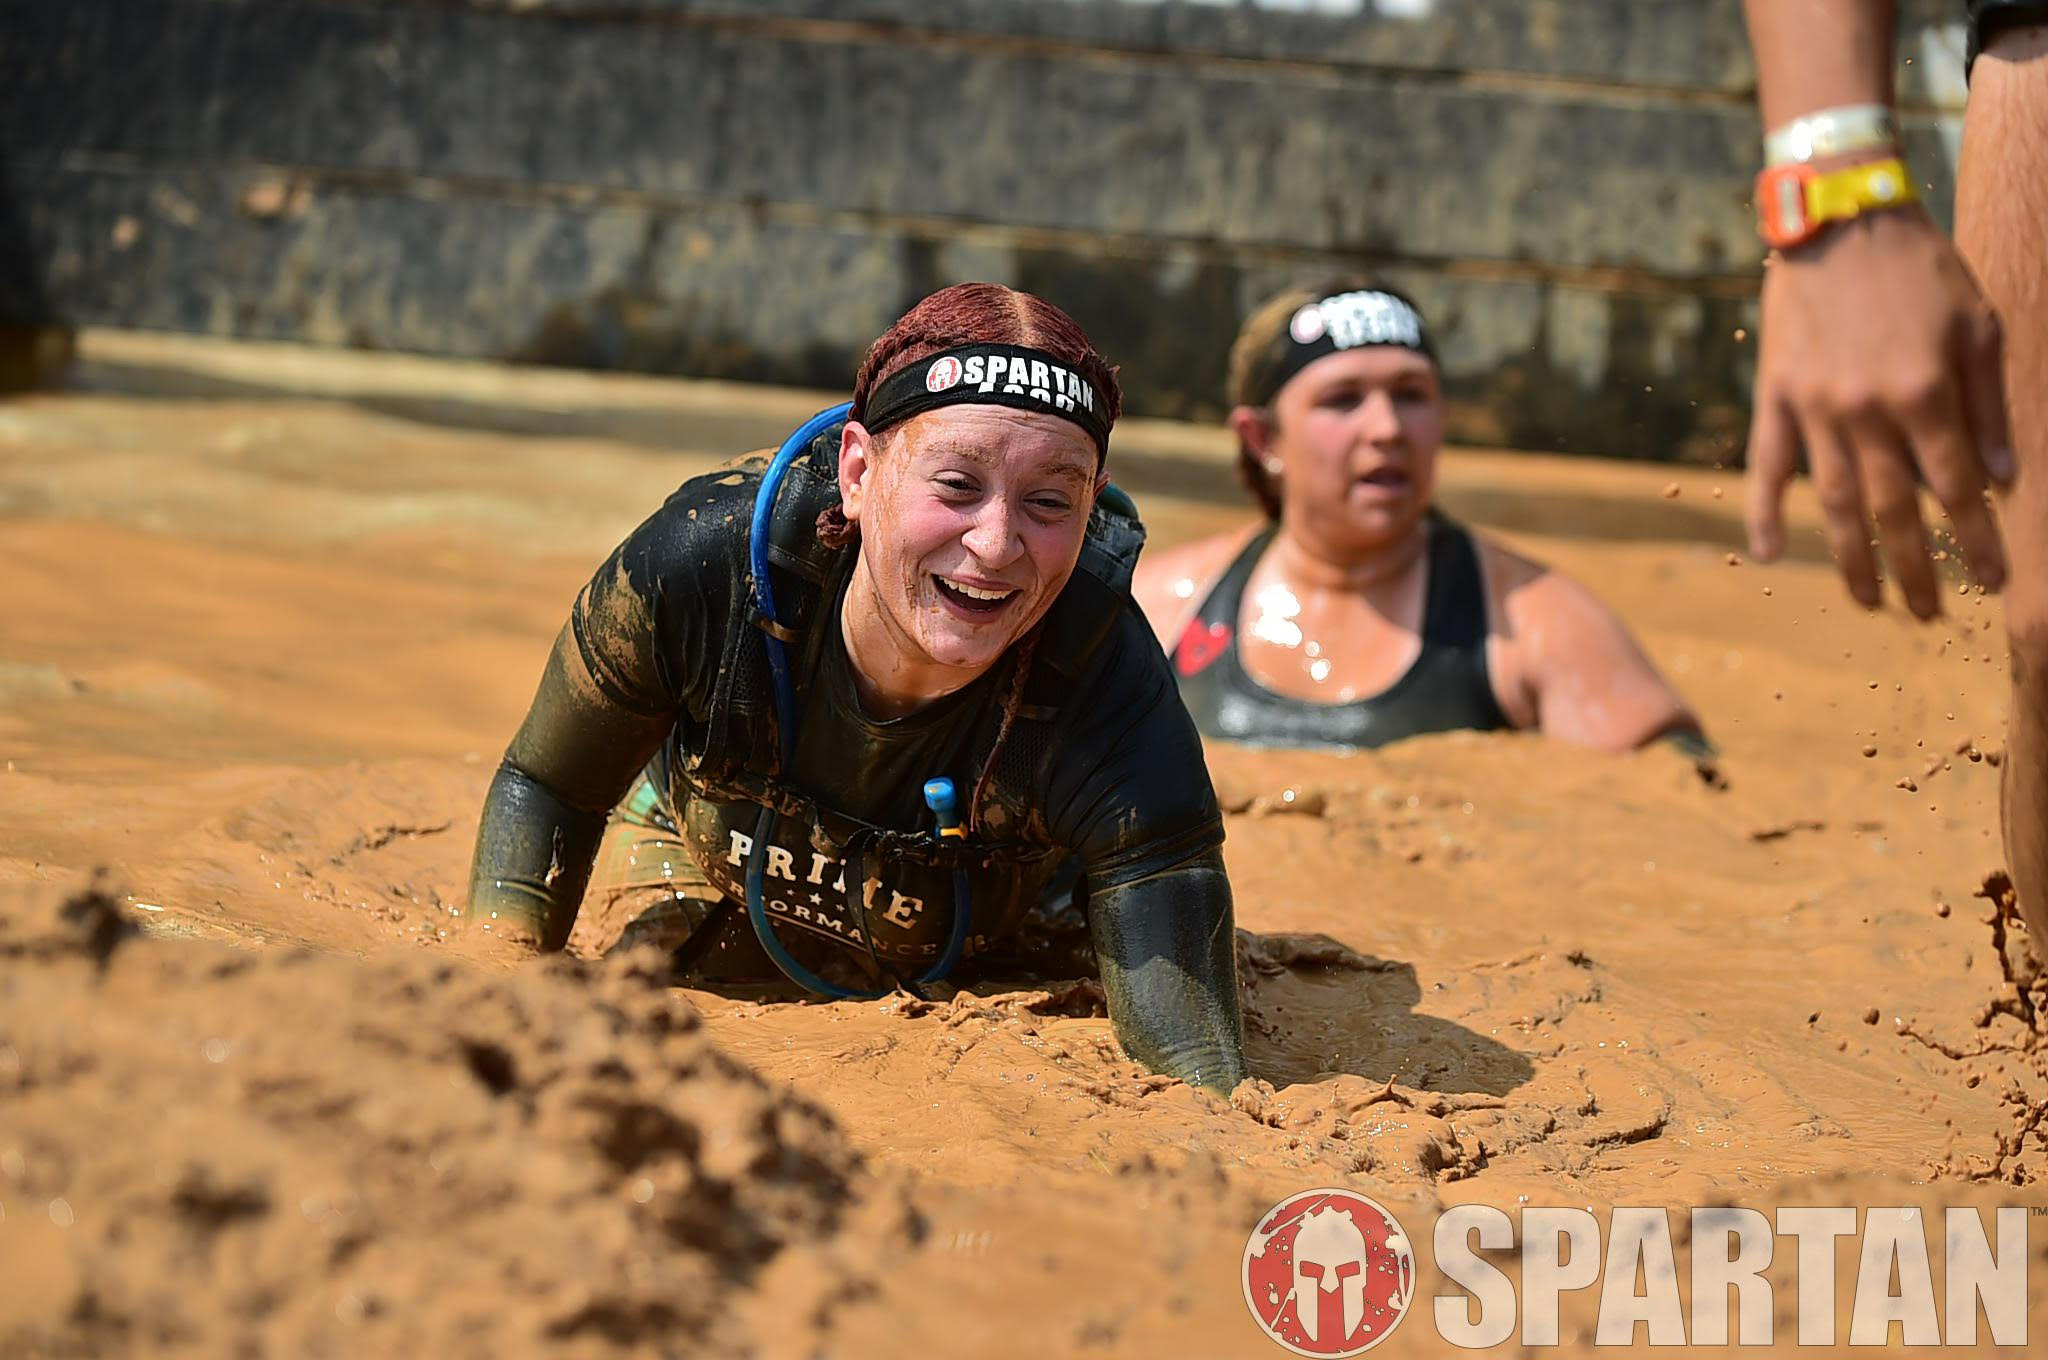 Photo by Spartan Race Organization